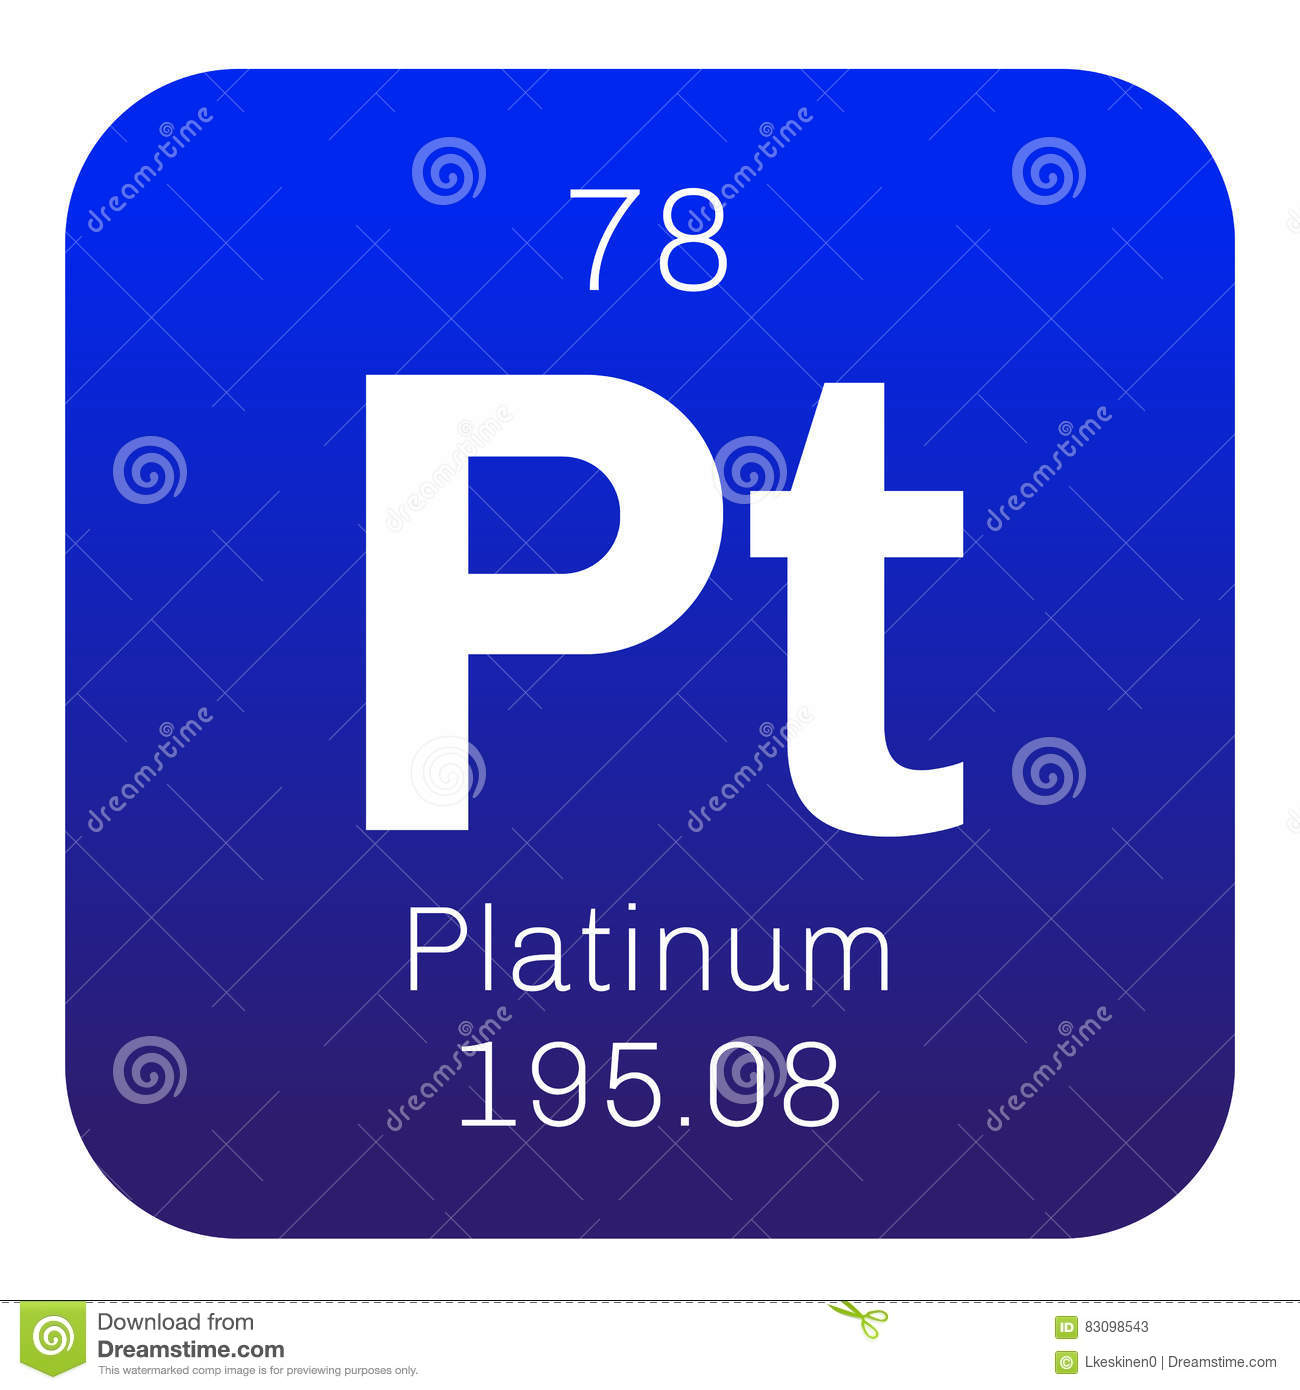 Platinum Chemical Element Stock Vector Illustration Of Chemistry